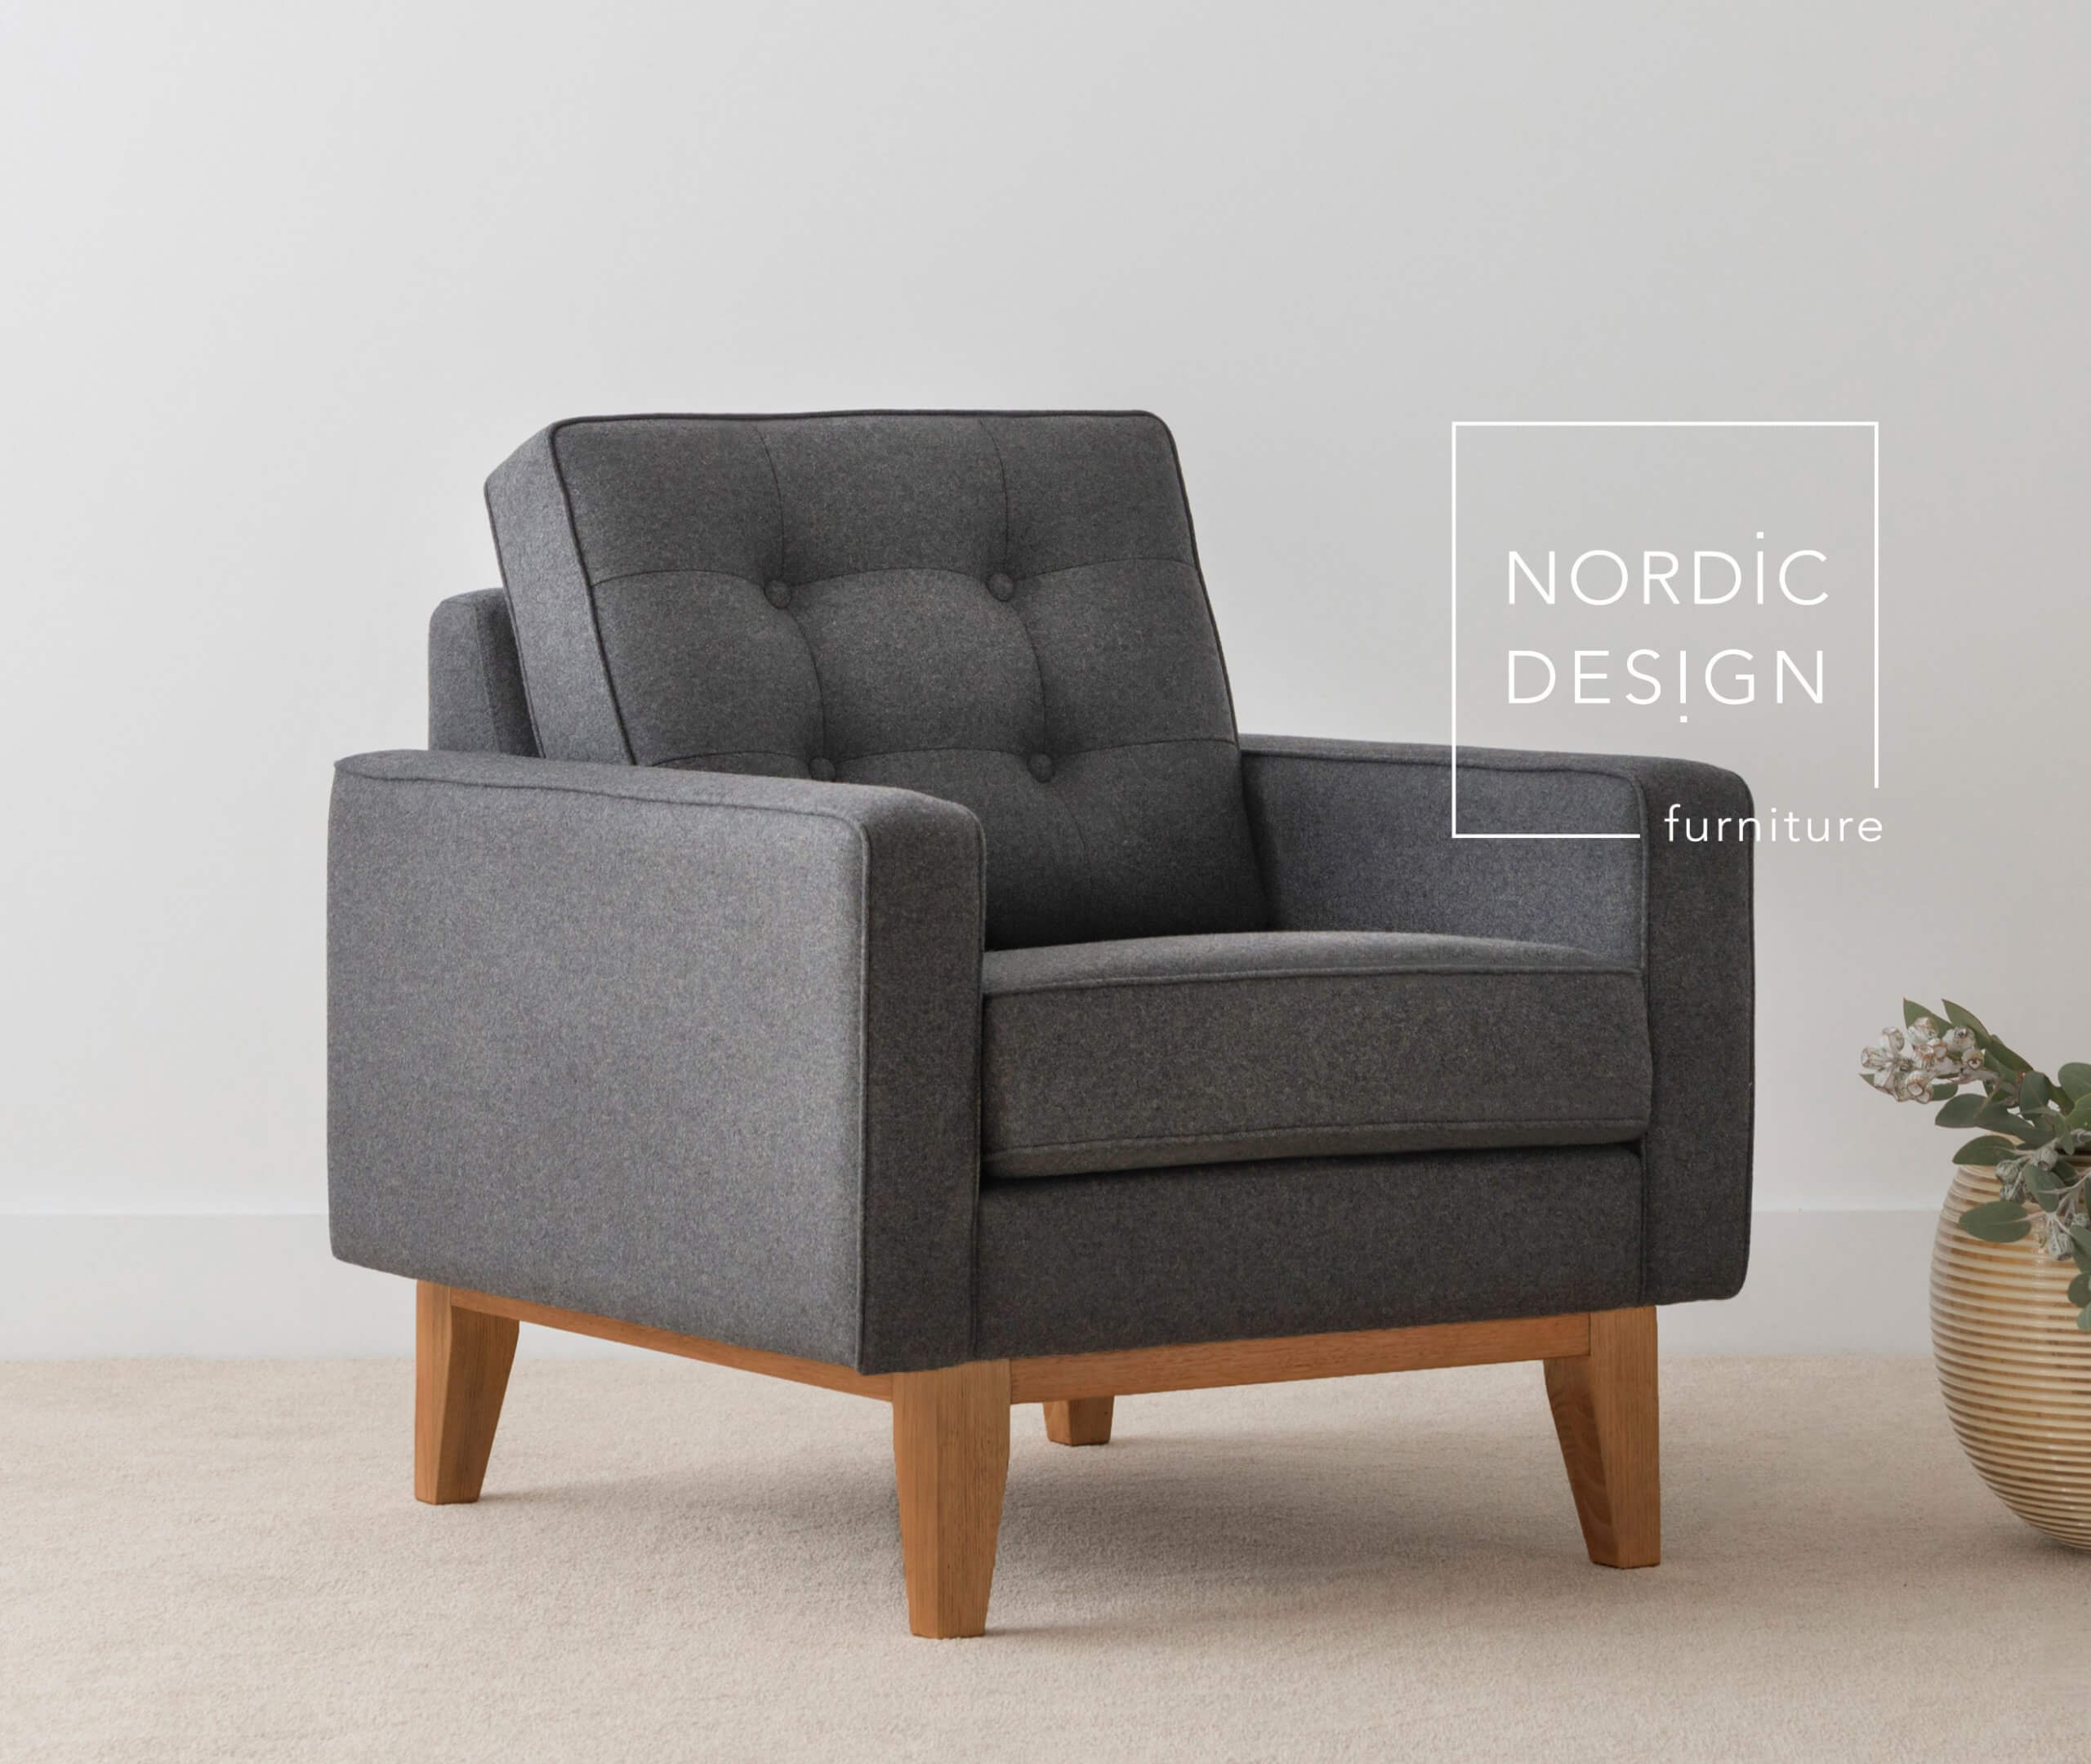 fabric arm chair with exposed blackwood timber base and button cushion detail